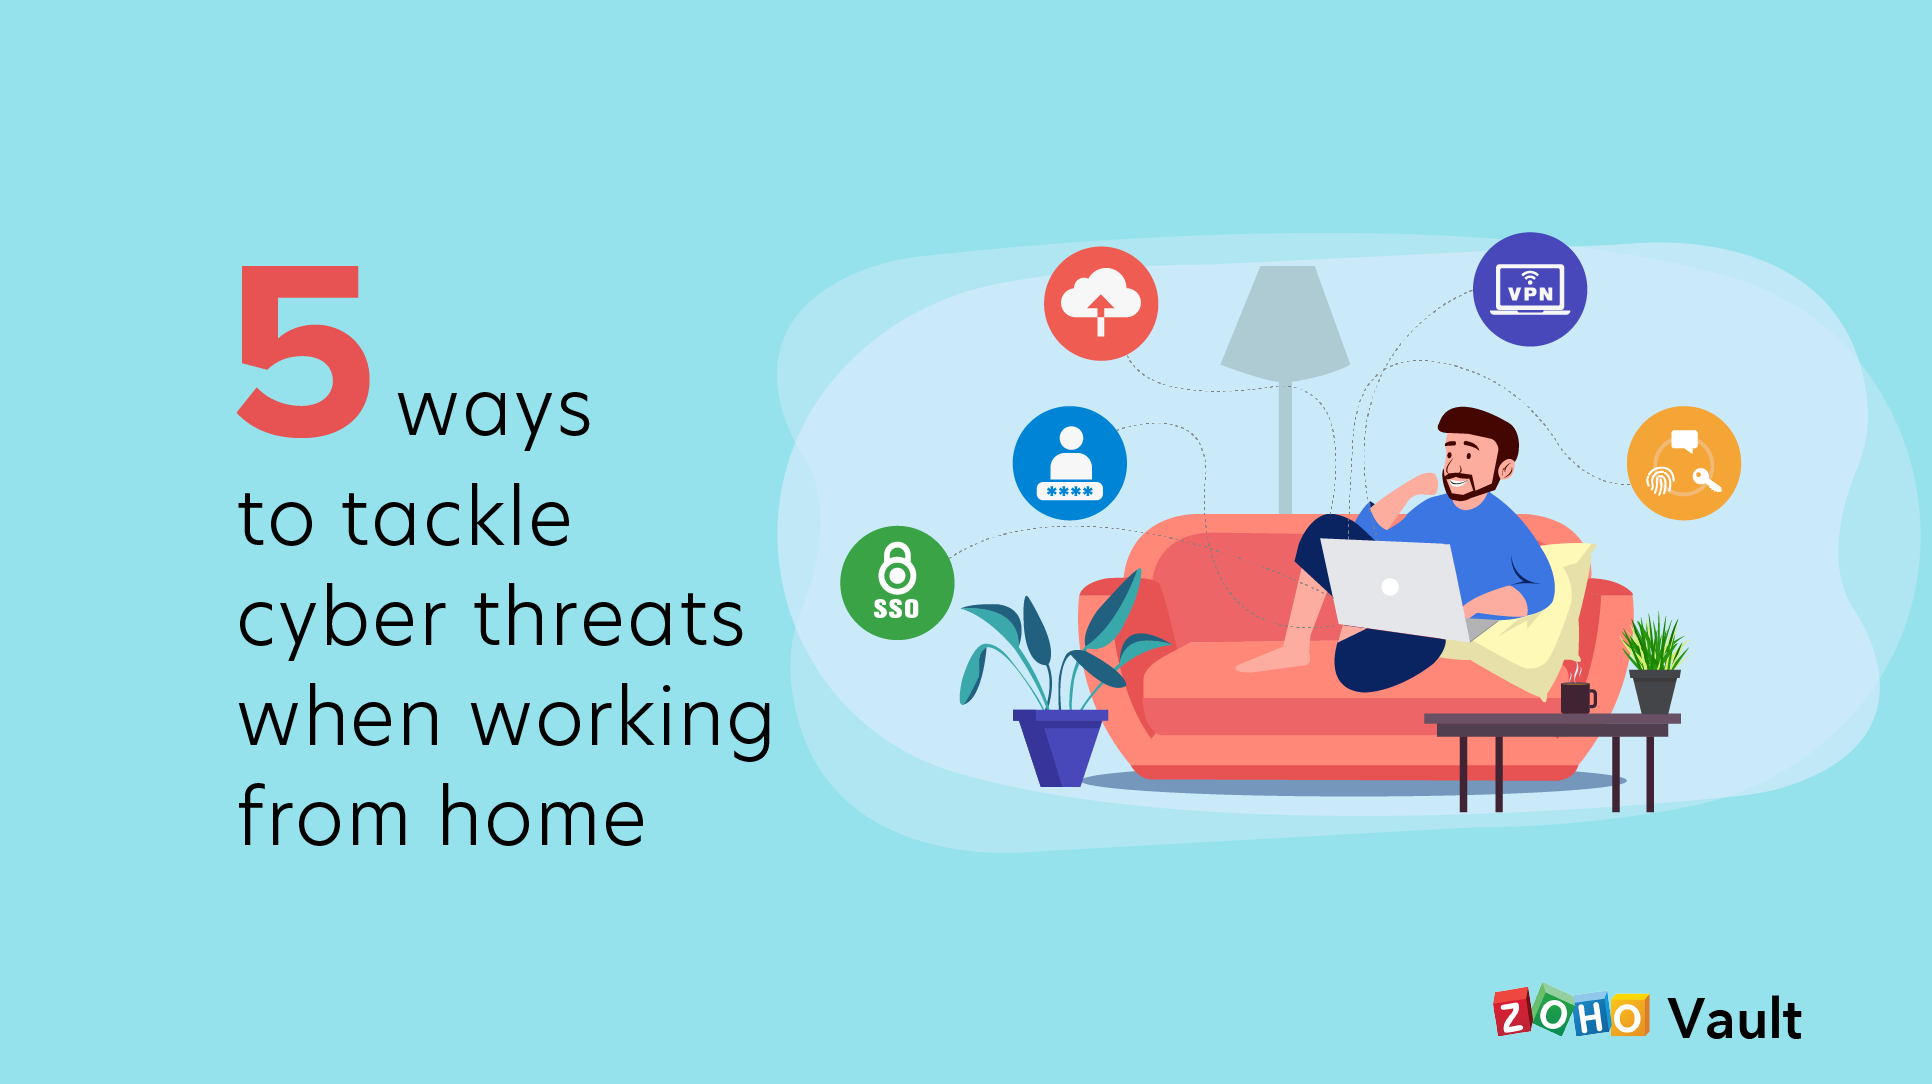 5 ways to tackle cyber threats when working from home